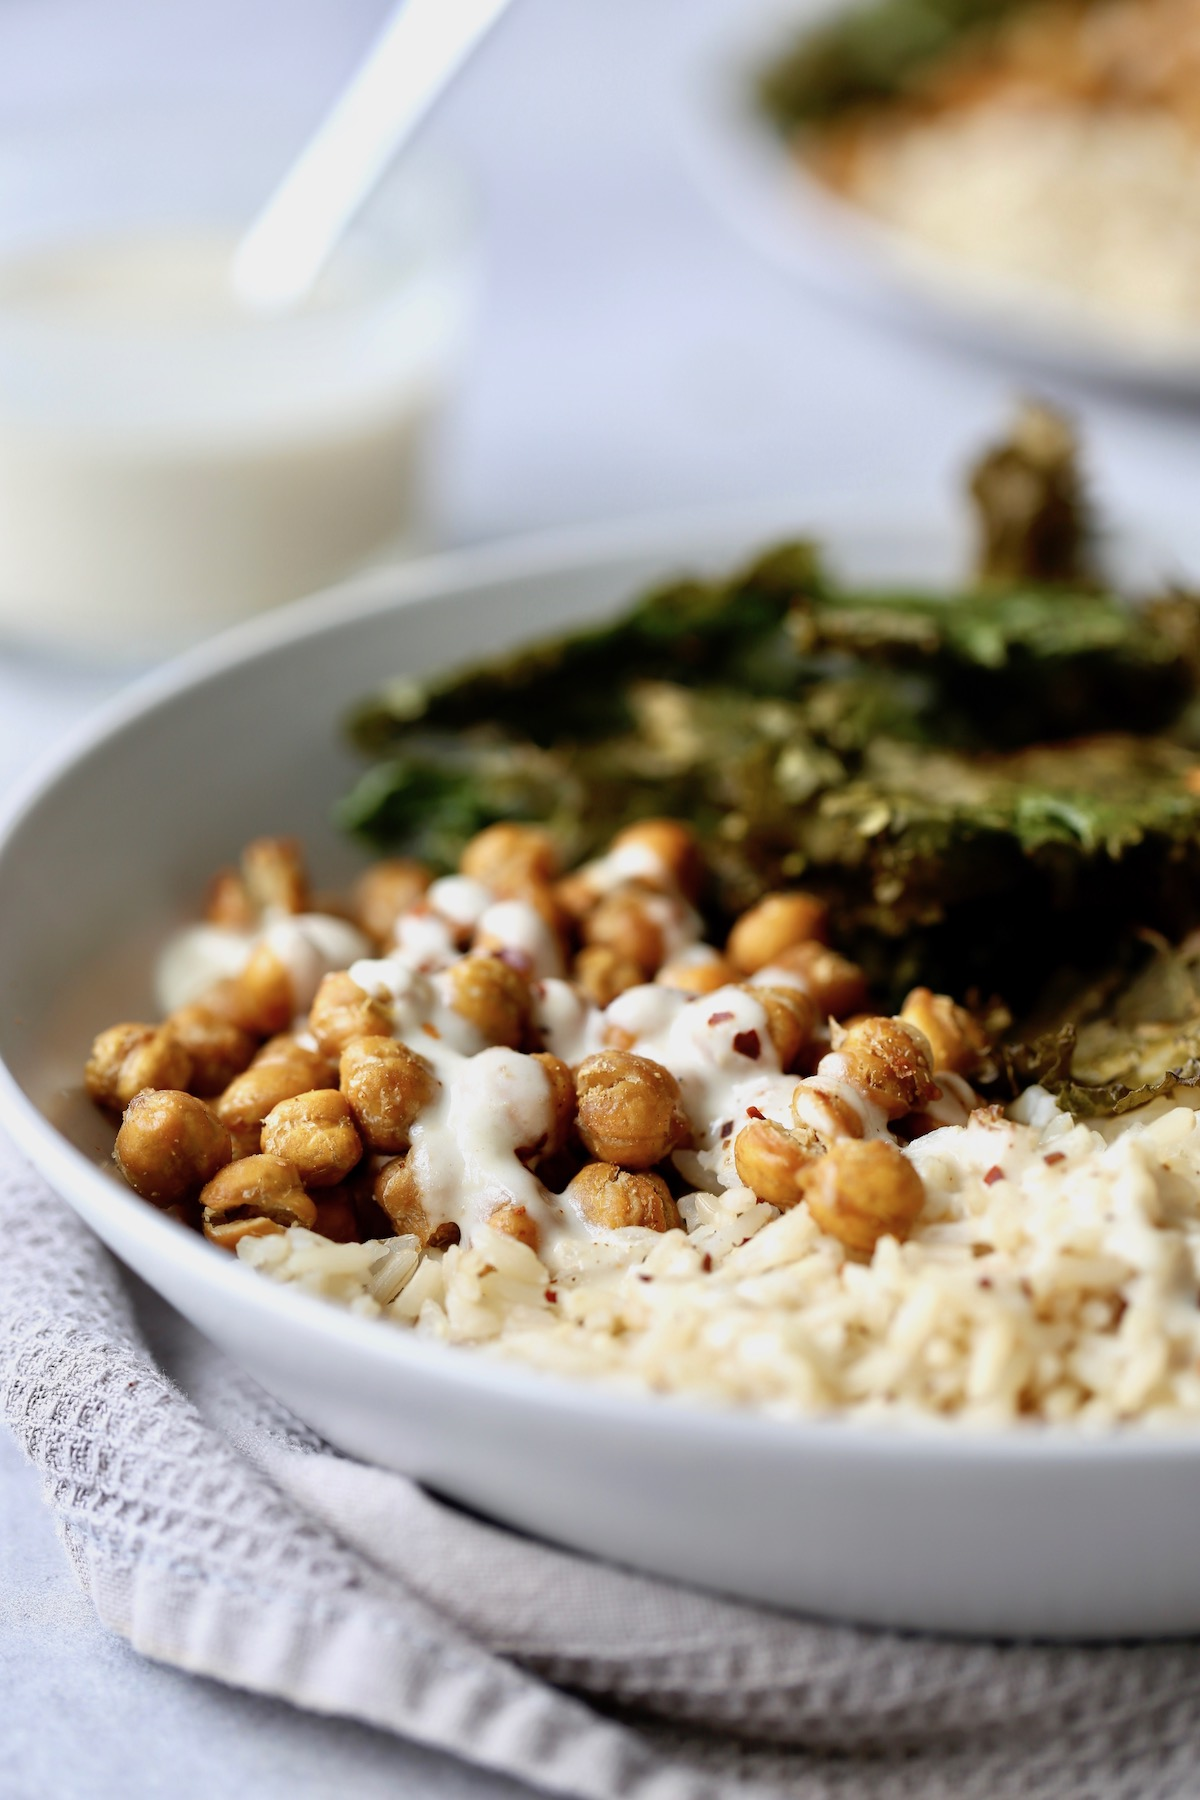 lemon tahini dressing drizzled over crispy chickpeas and brown rice